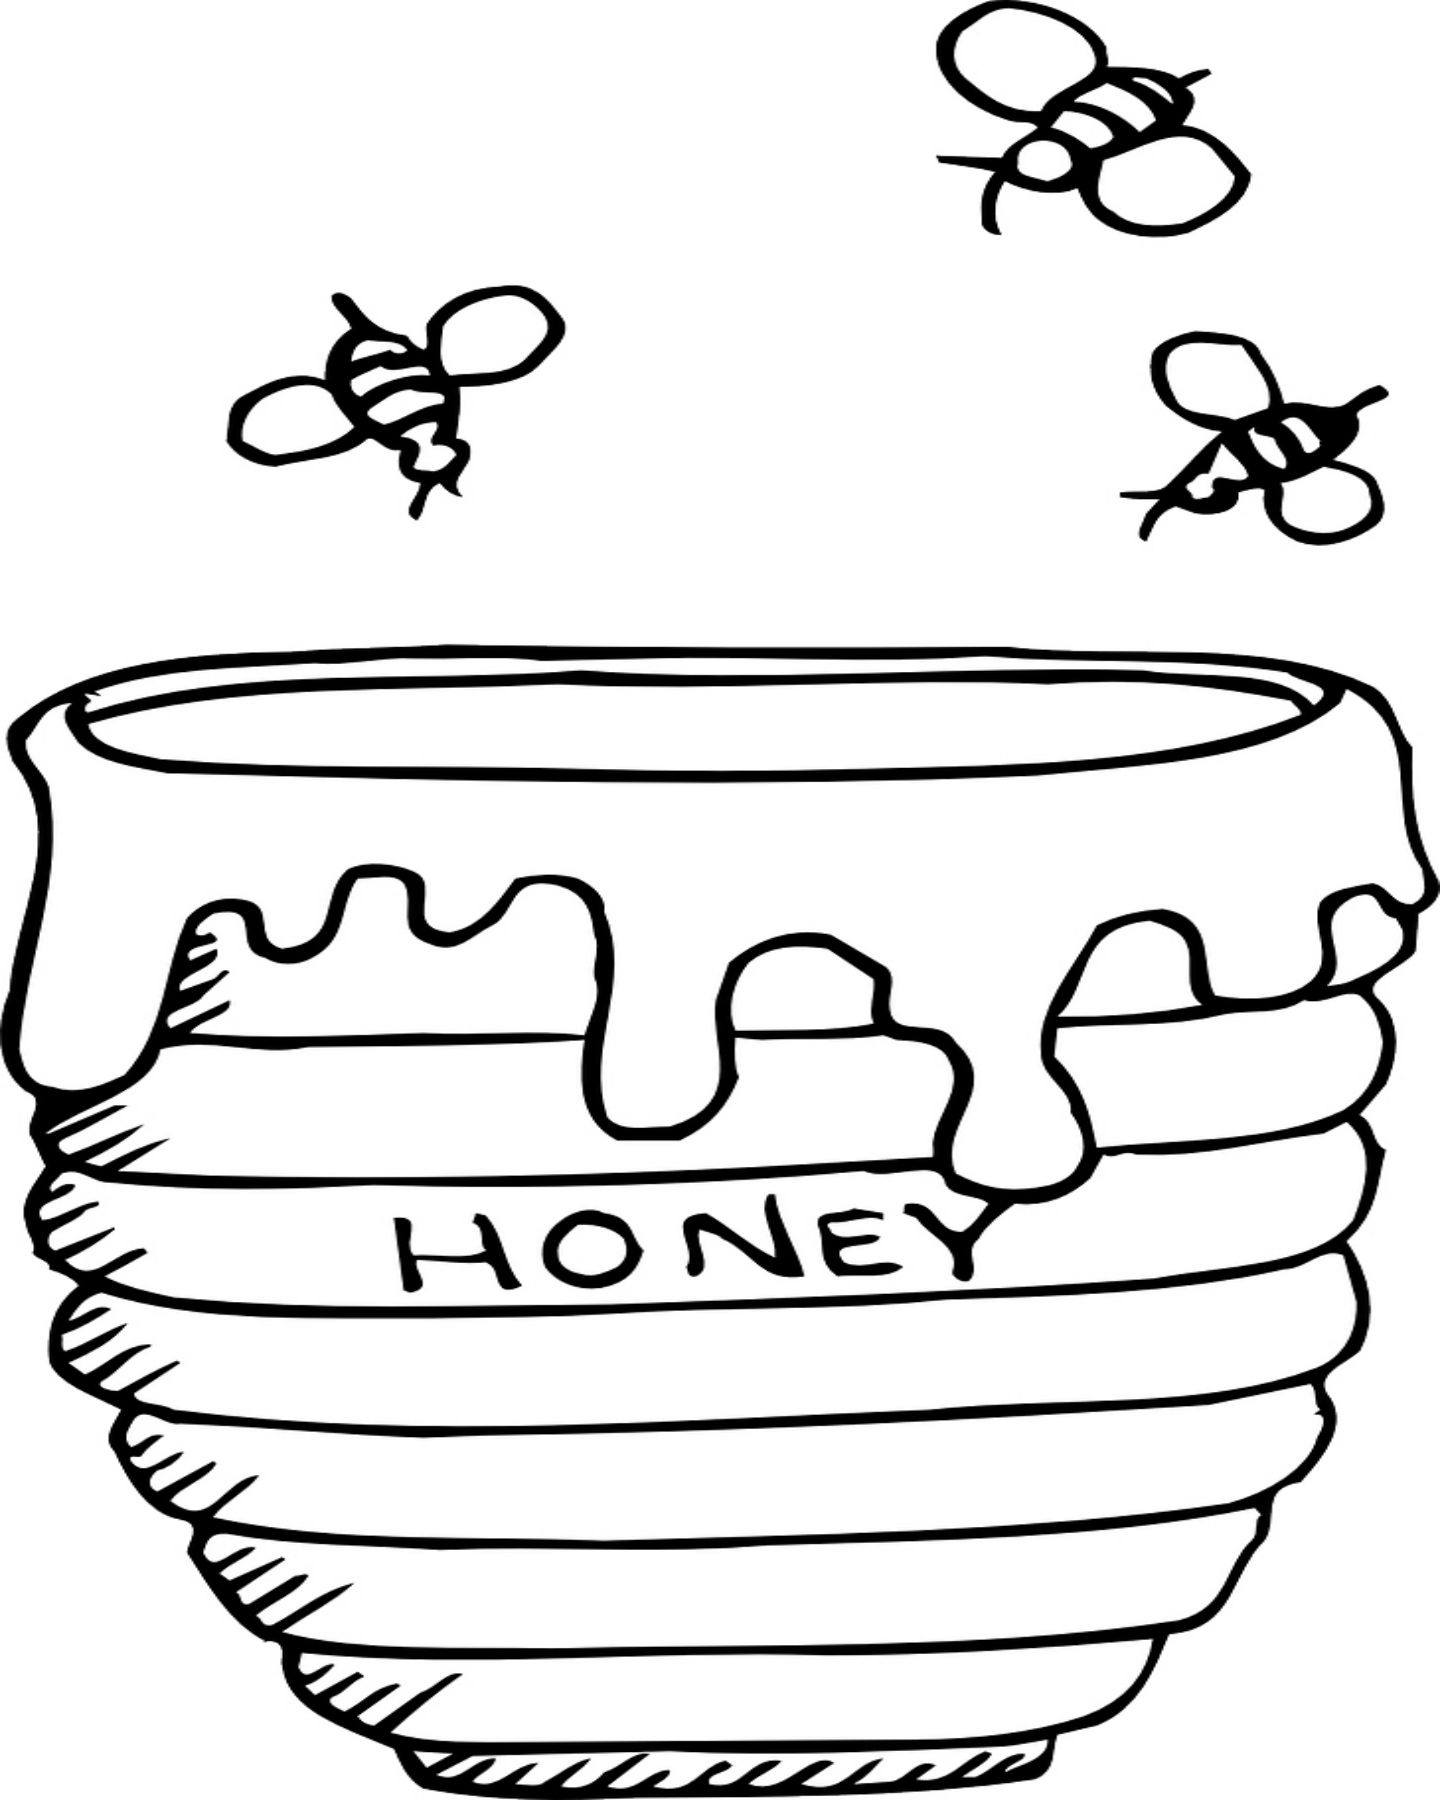 Bees Buzzing Around a Honey Pot Coloring Page | Kids - Family - Home ...